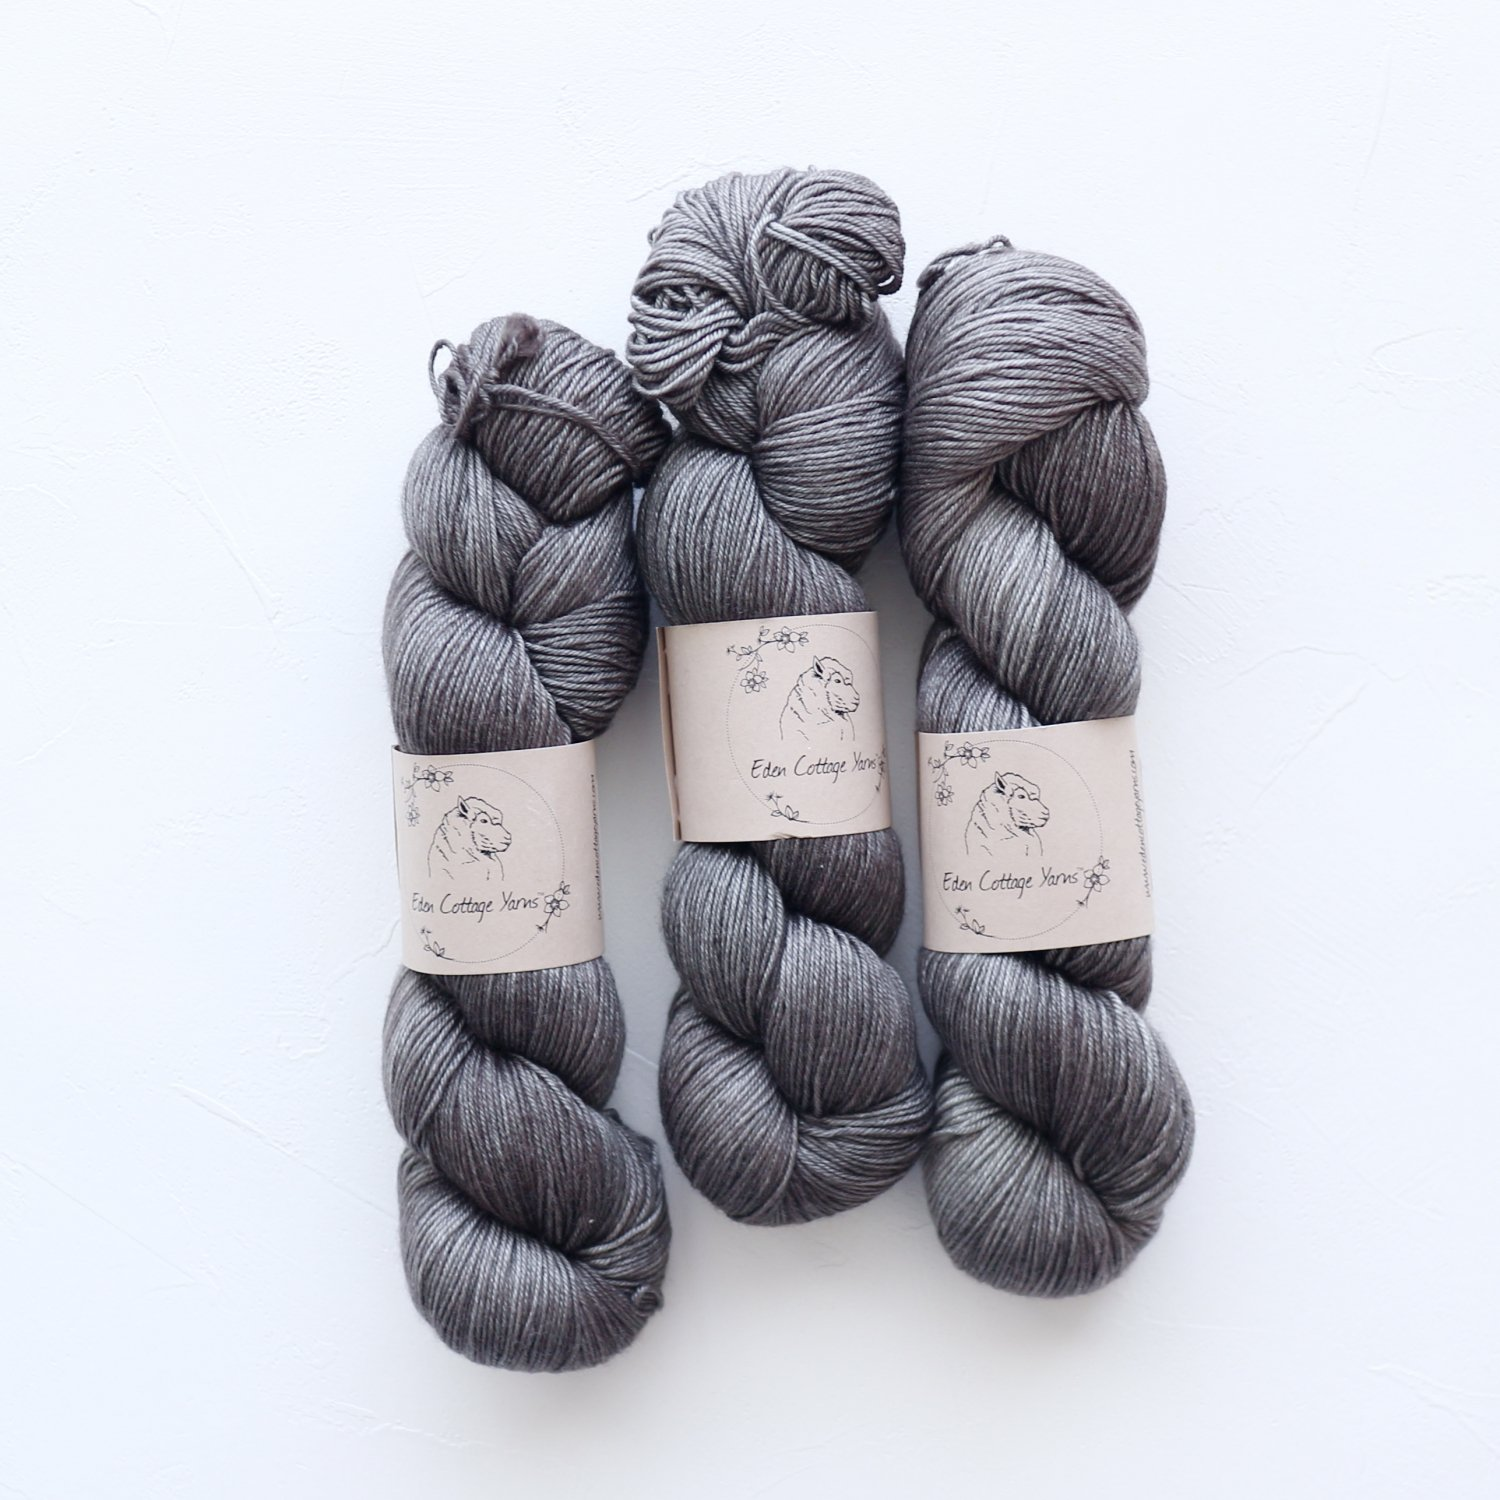 【Eden Cottage Yarns】<br>Titus 4ply<br>Charcoal